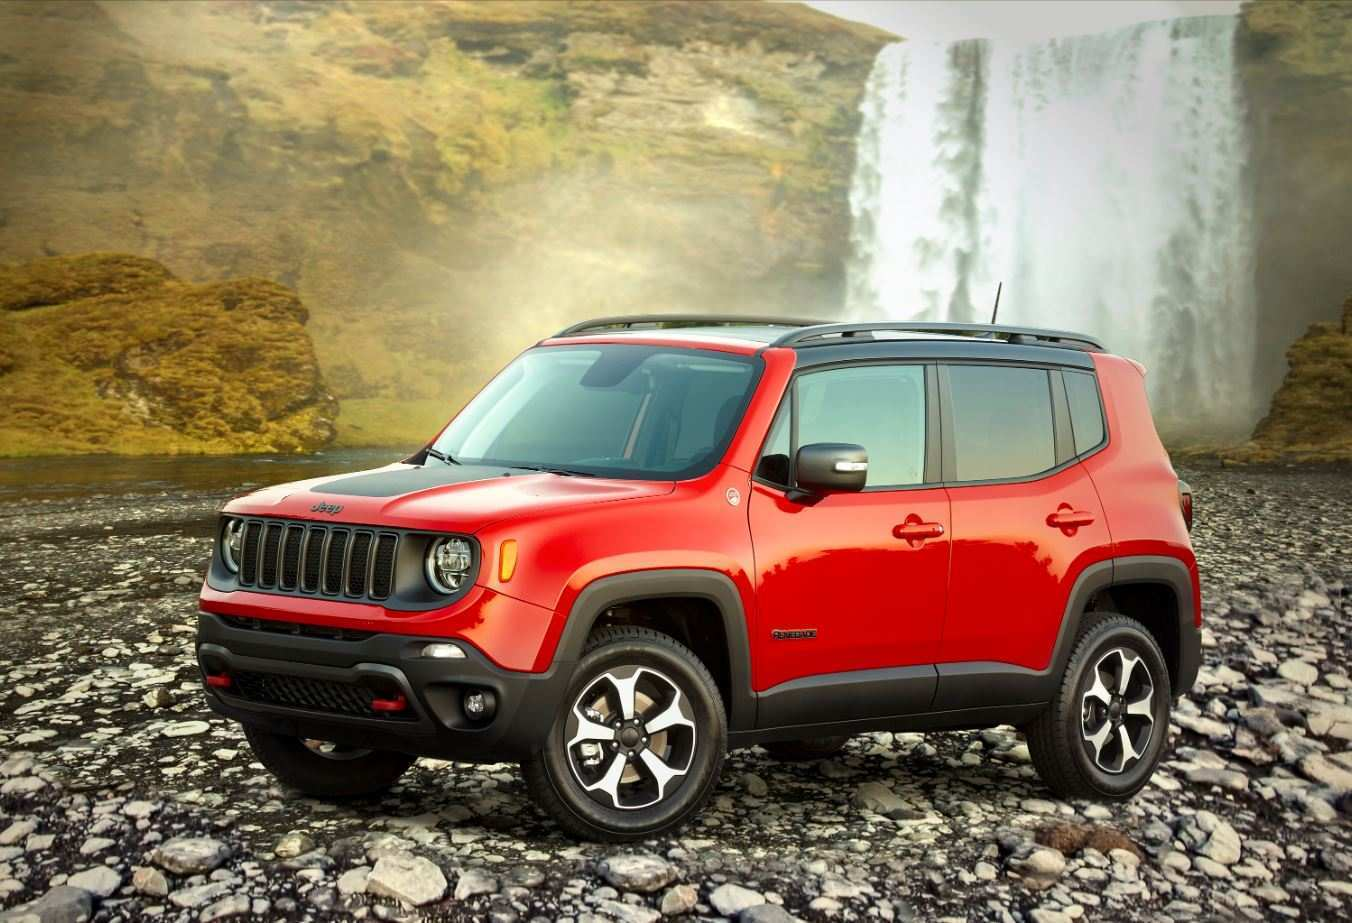 73 Great Jeep Renegade 2020 Release Date with Jeep Renegade 2020